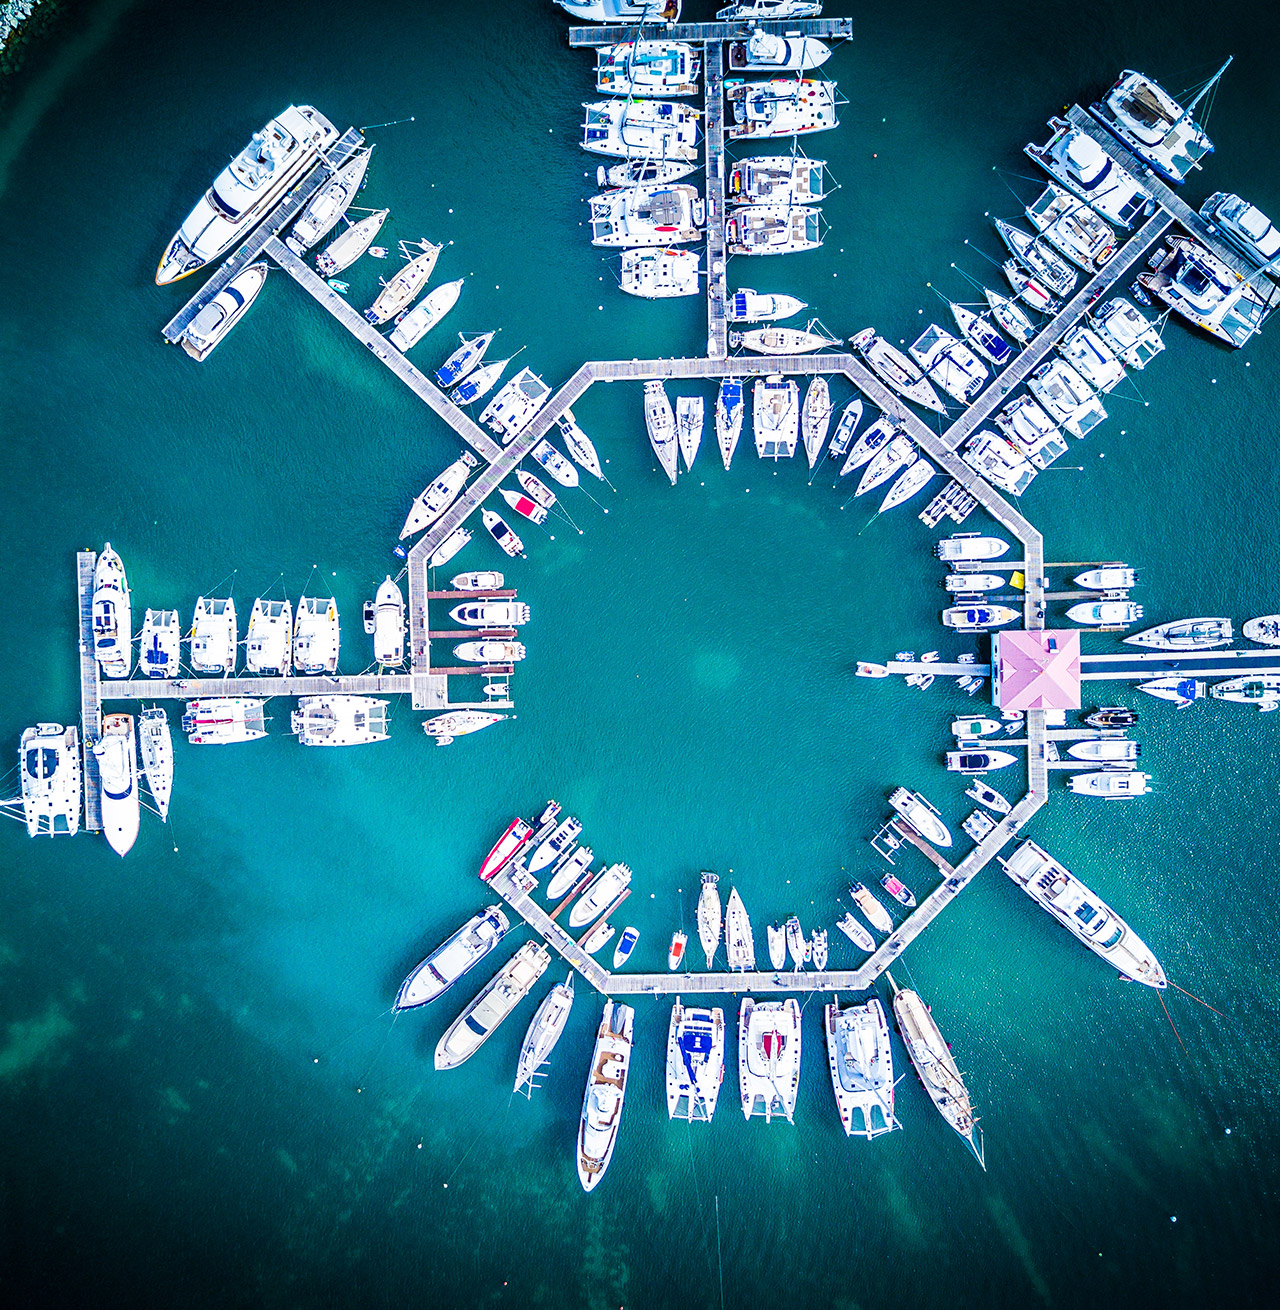 Ariel view of yachts in dock. Location unknown.